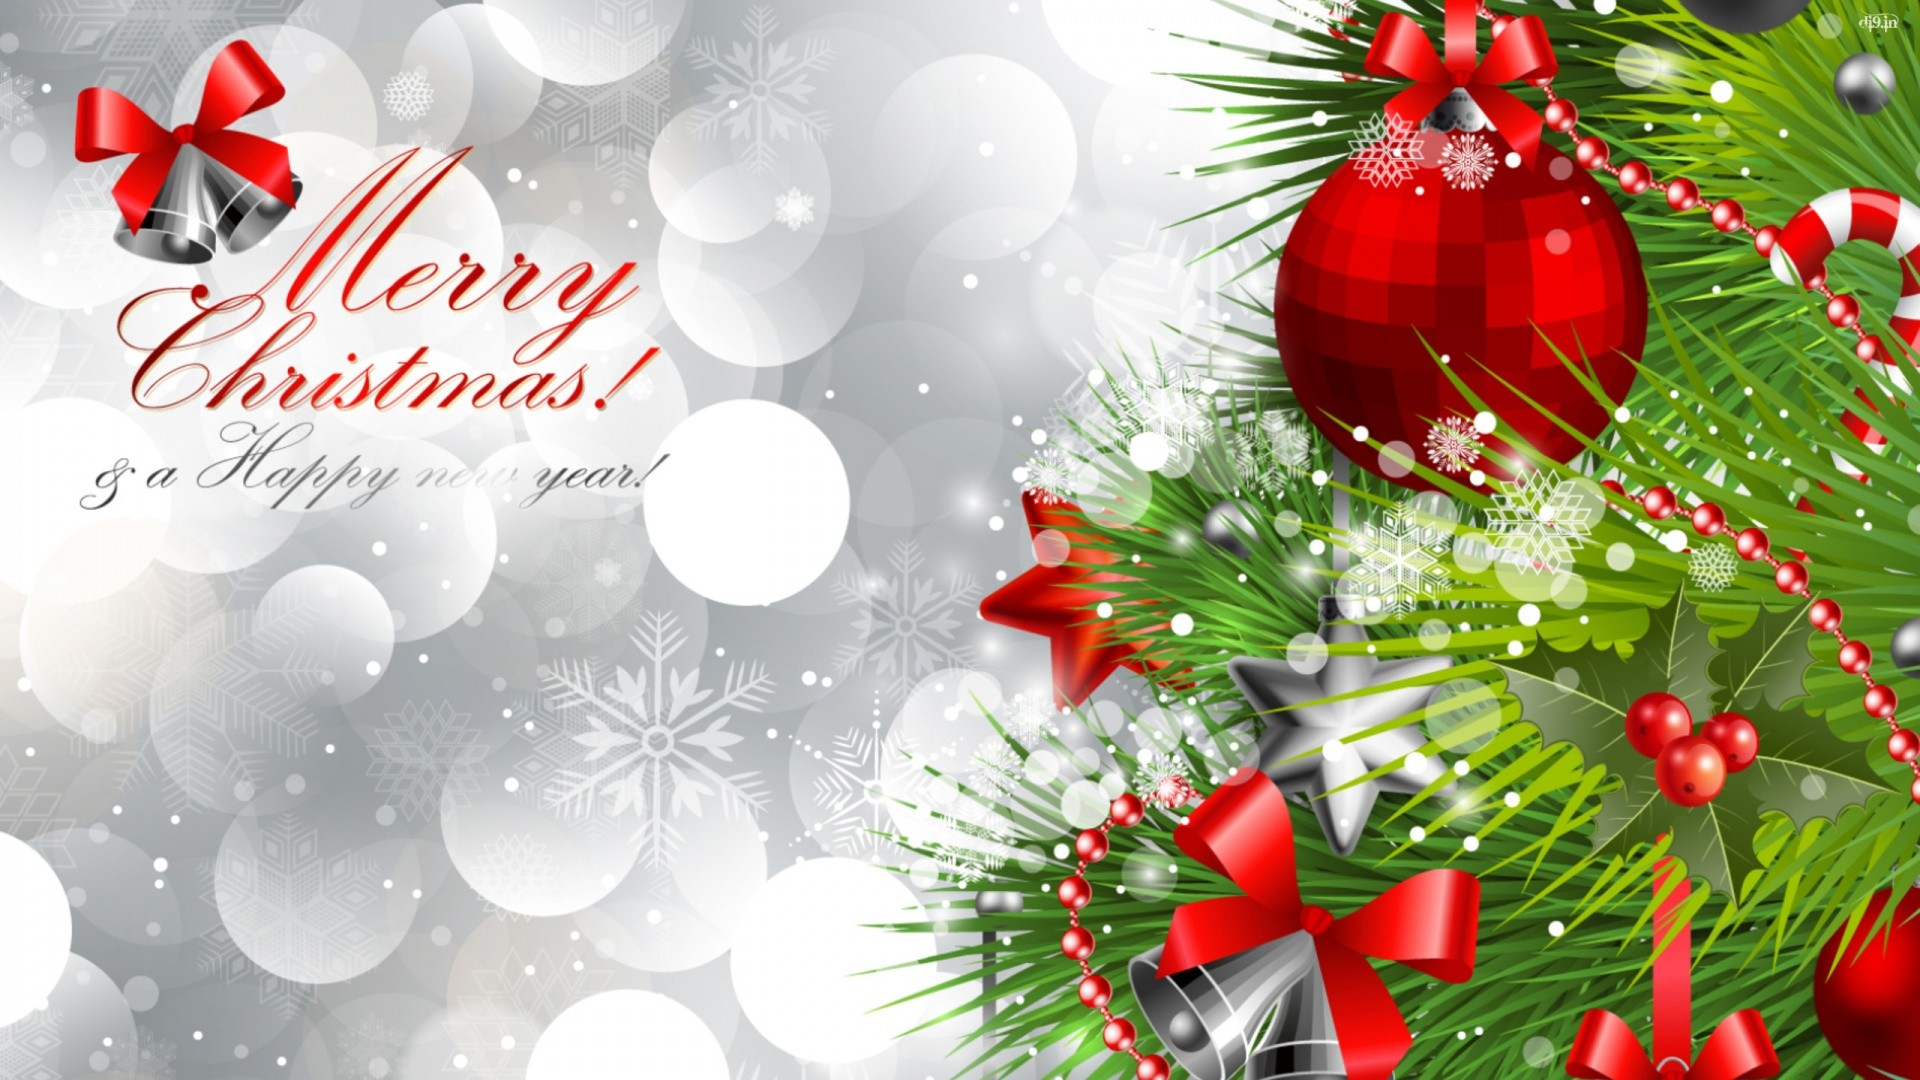 1920x1080 Merry Christmas and Happy New Year Wallpaper Full HD.